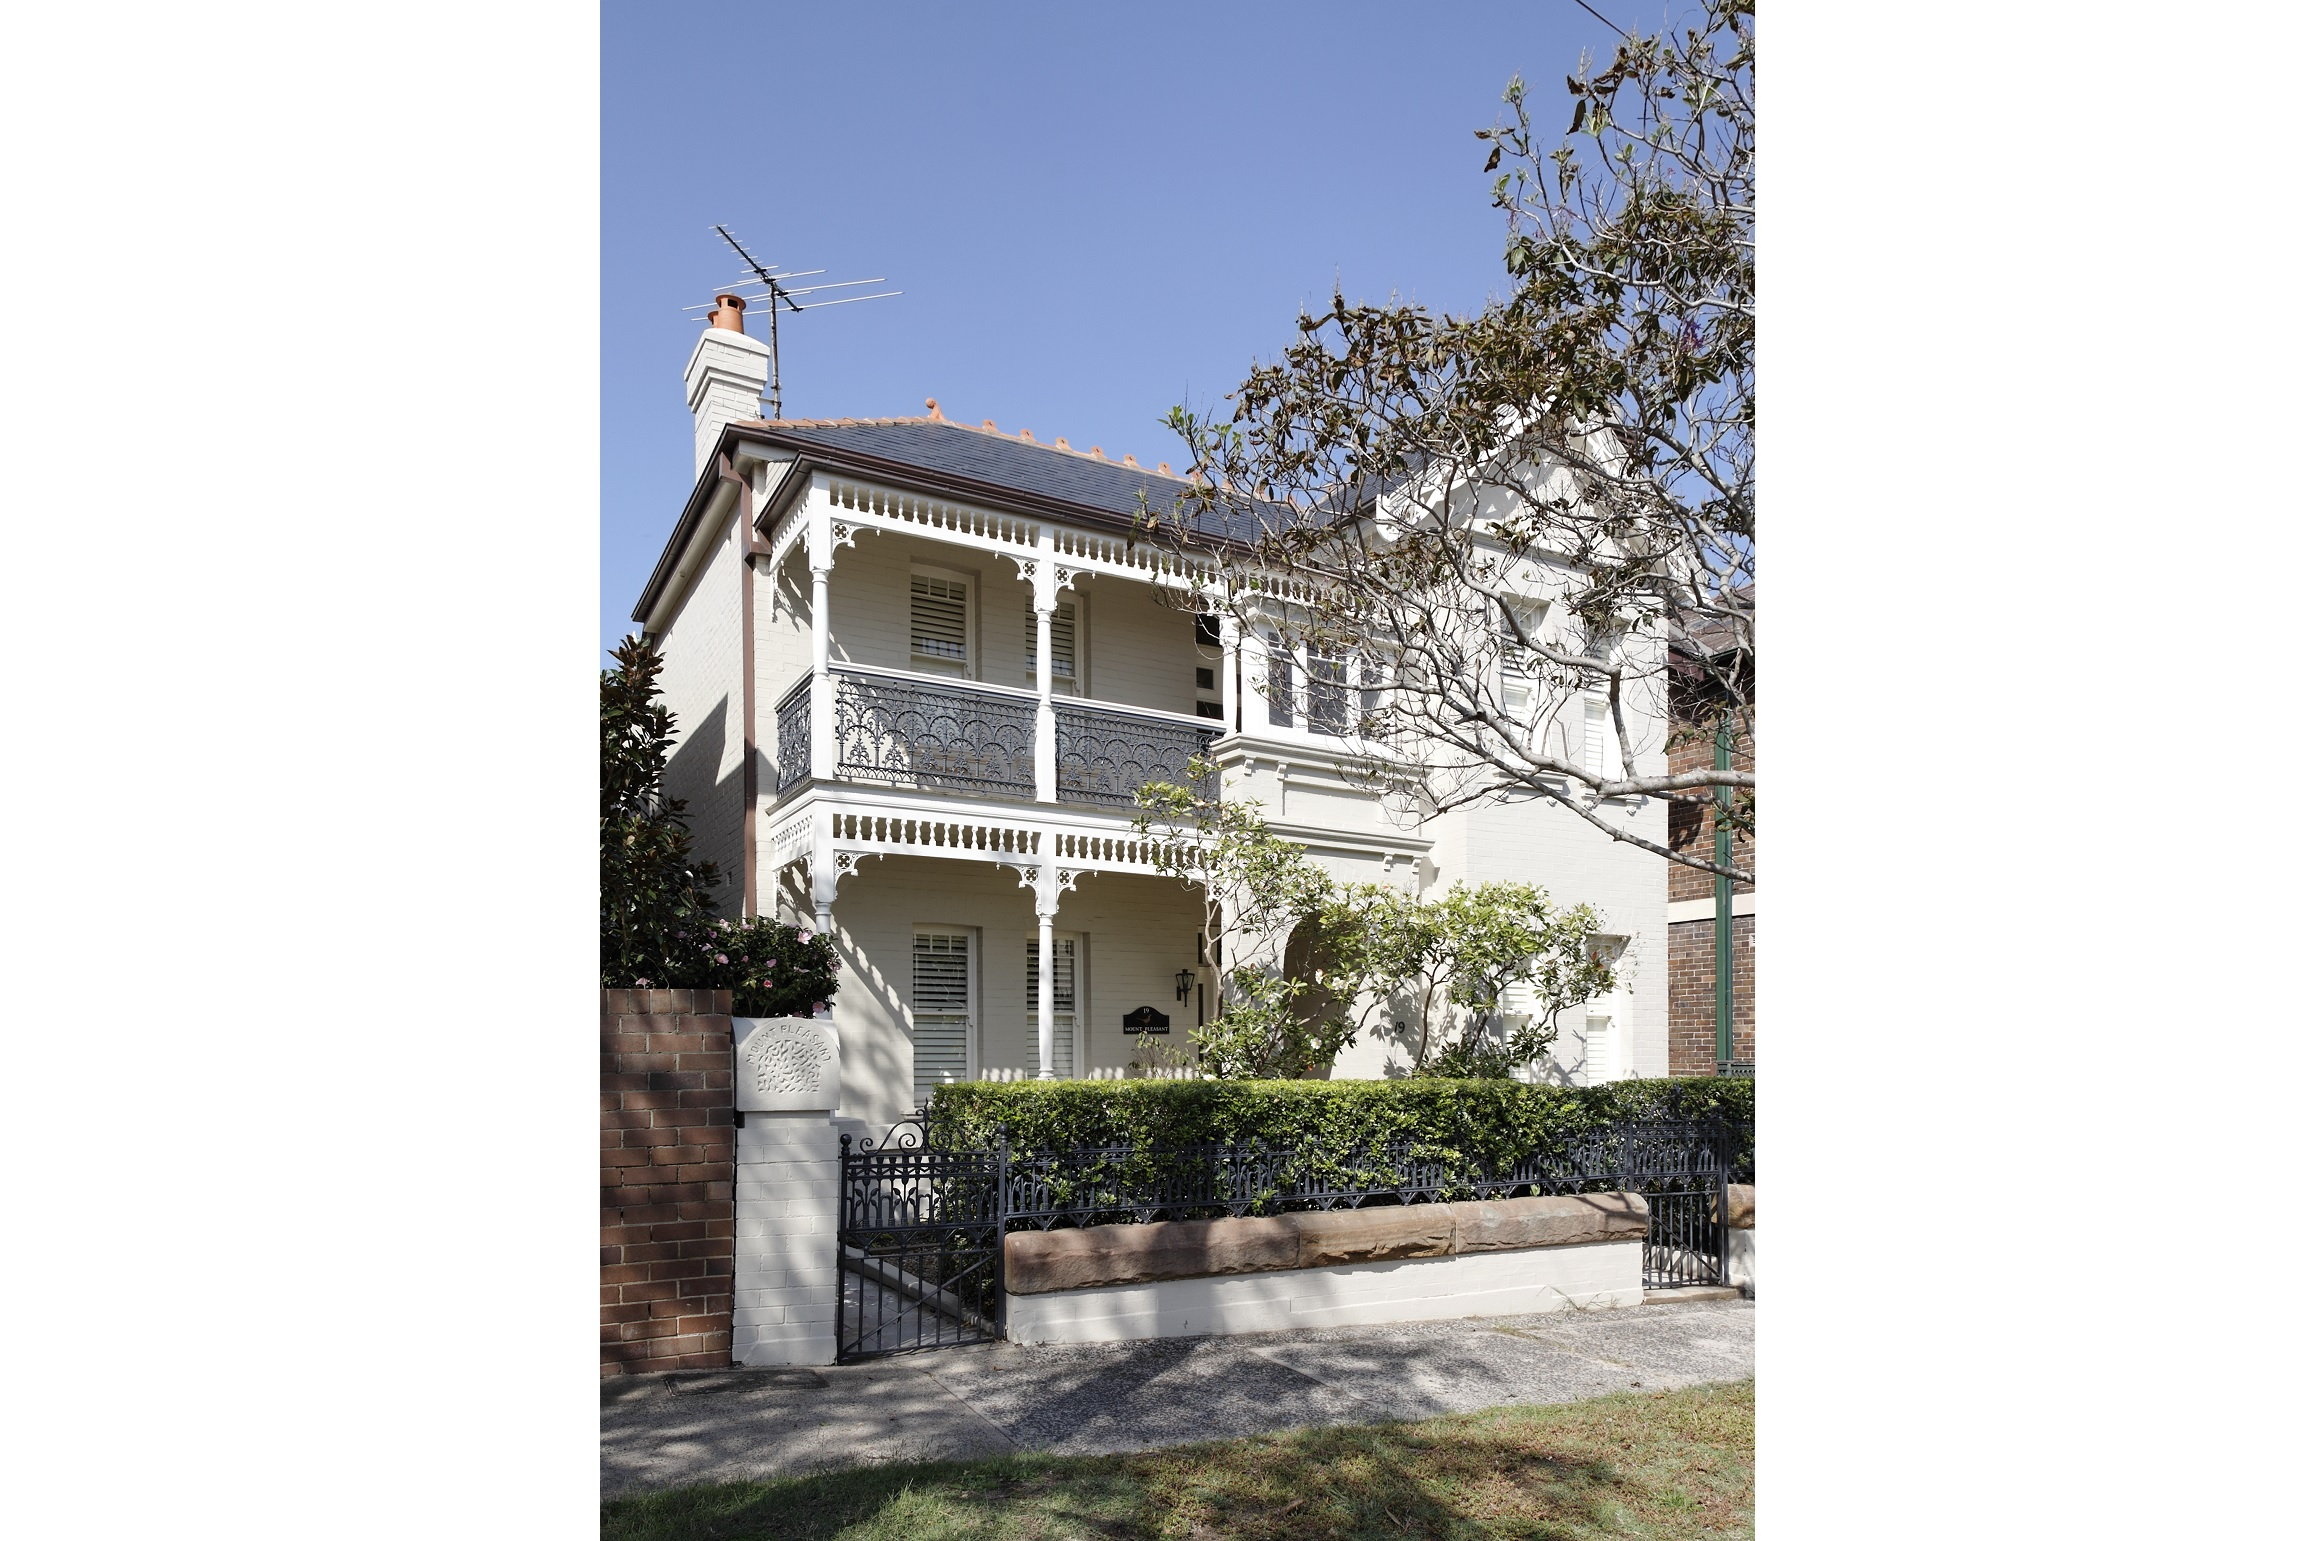 Sydney-Architecture-Townhouse-Heritage-Michael-Bell-Architects(2)